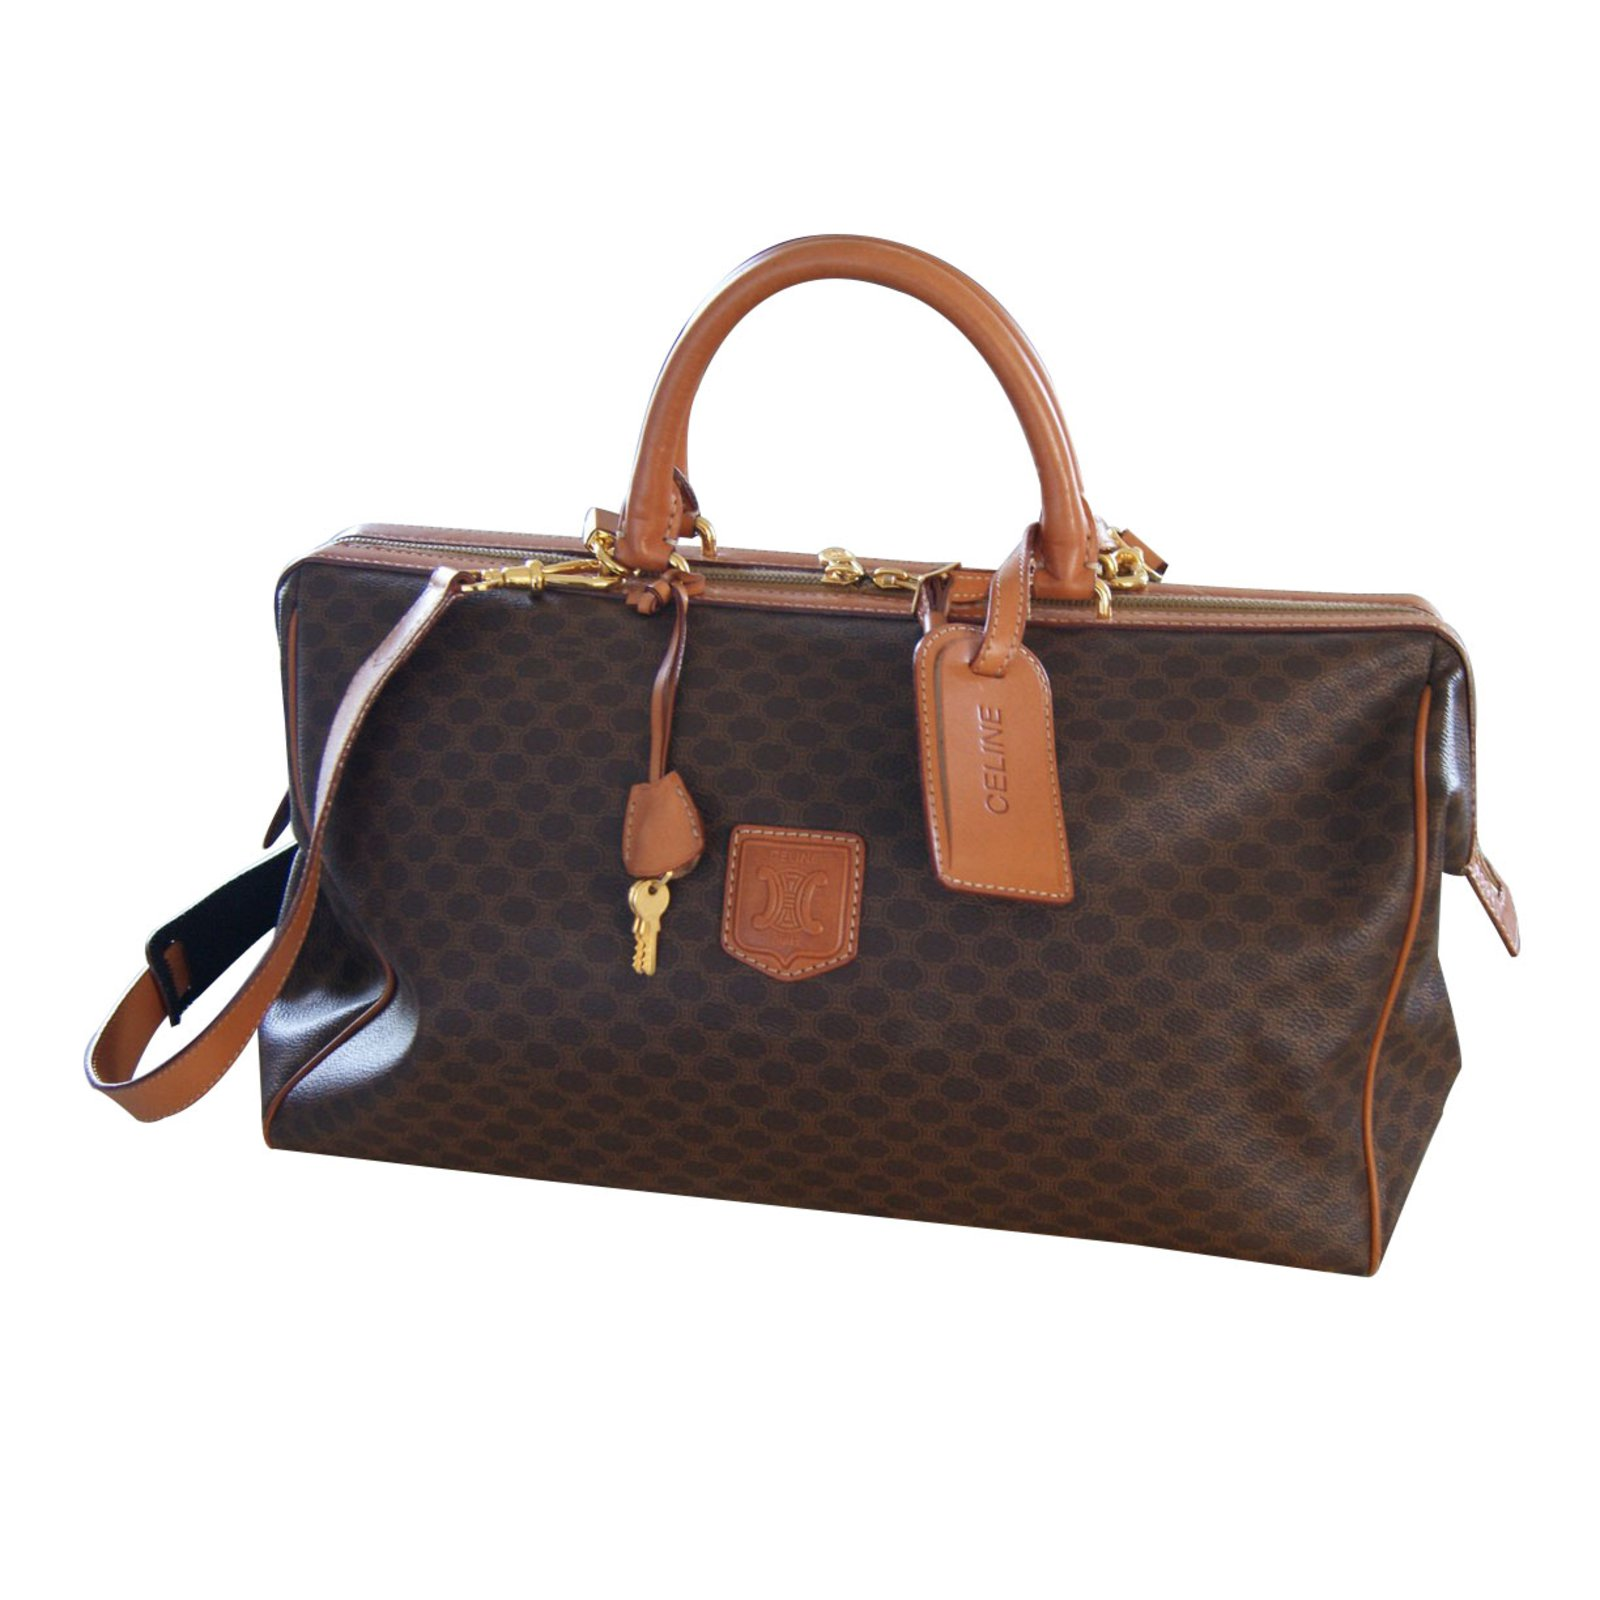 celine leather tote - celine travel bag, where to purchase celine bags online